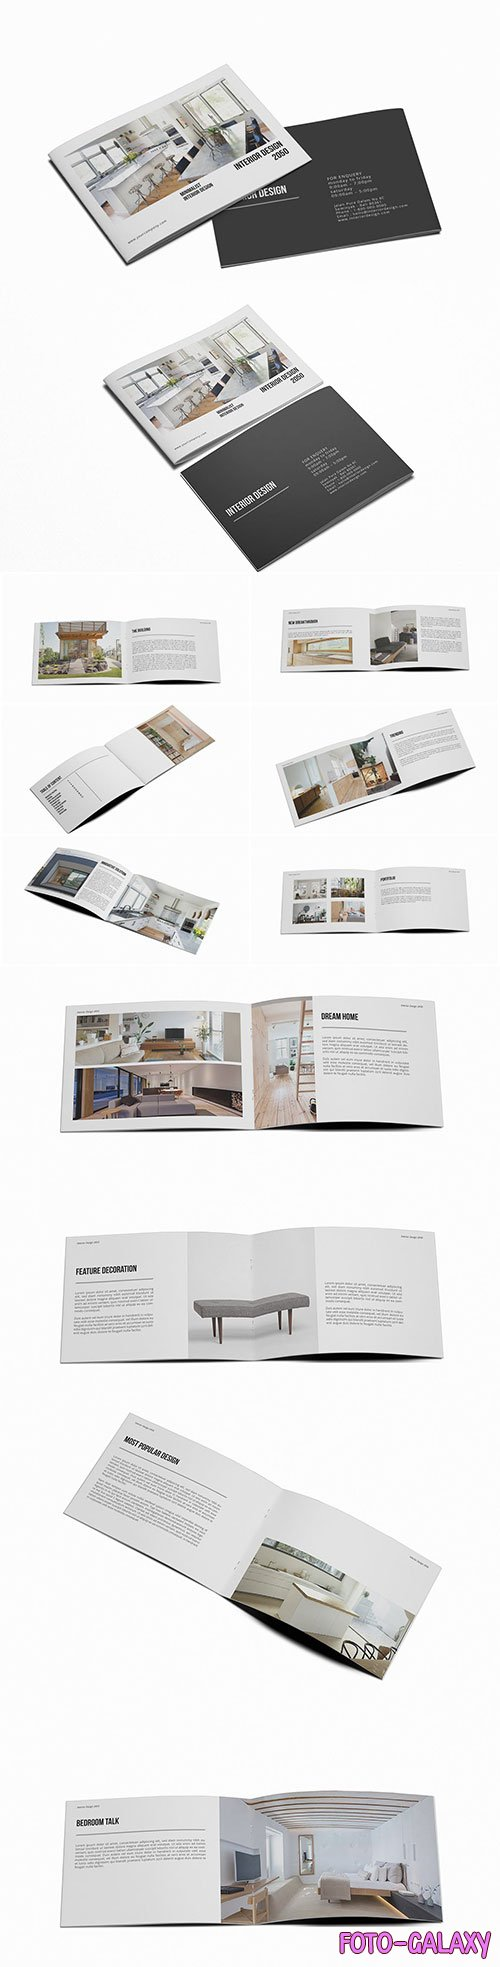 Interior Design Brochure #2